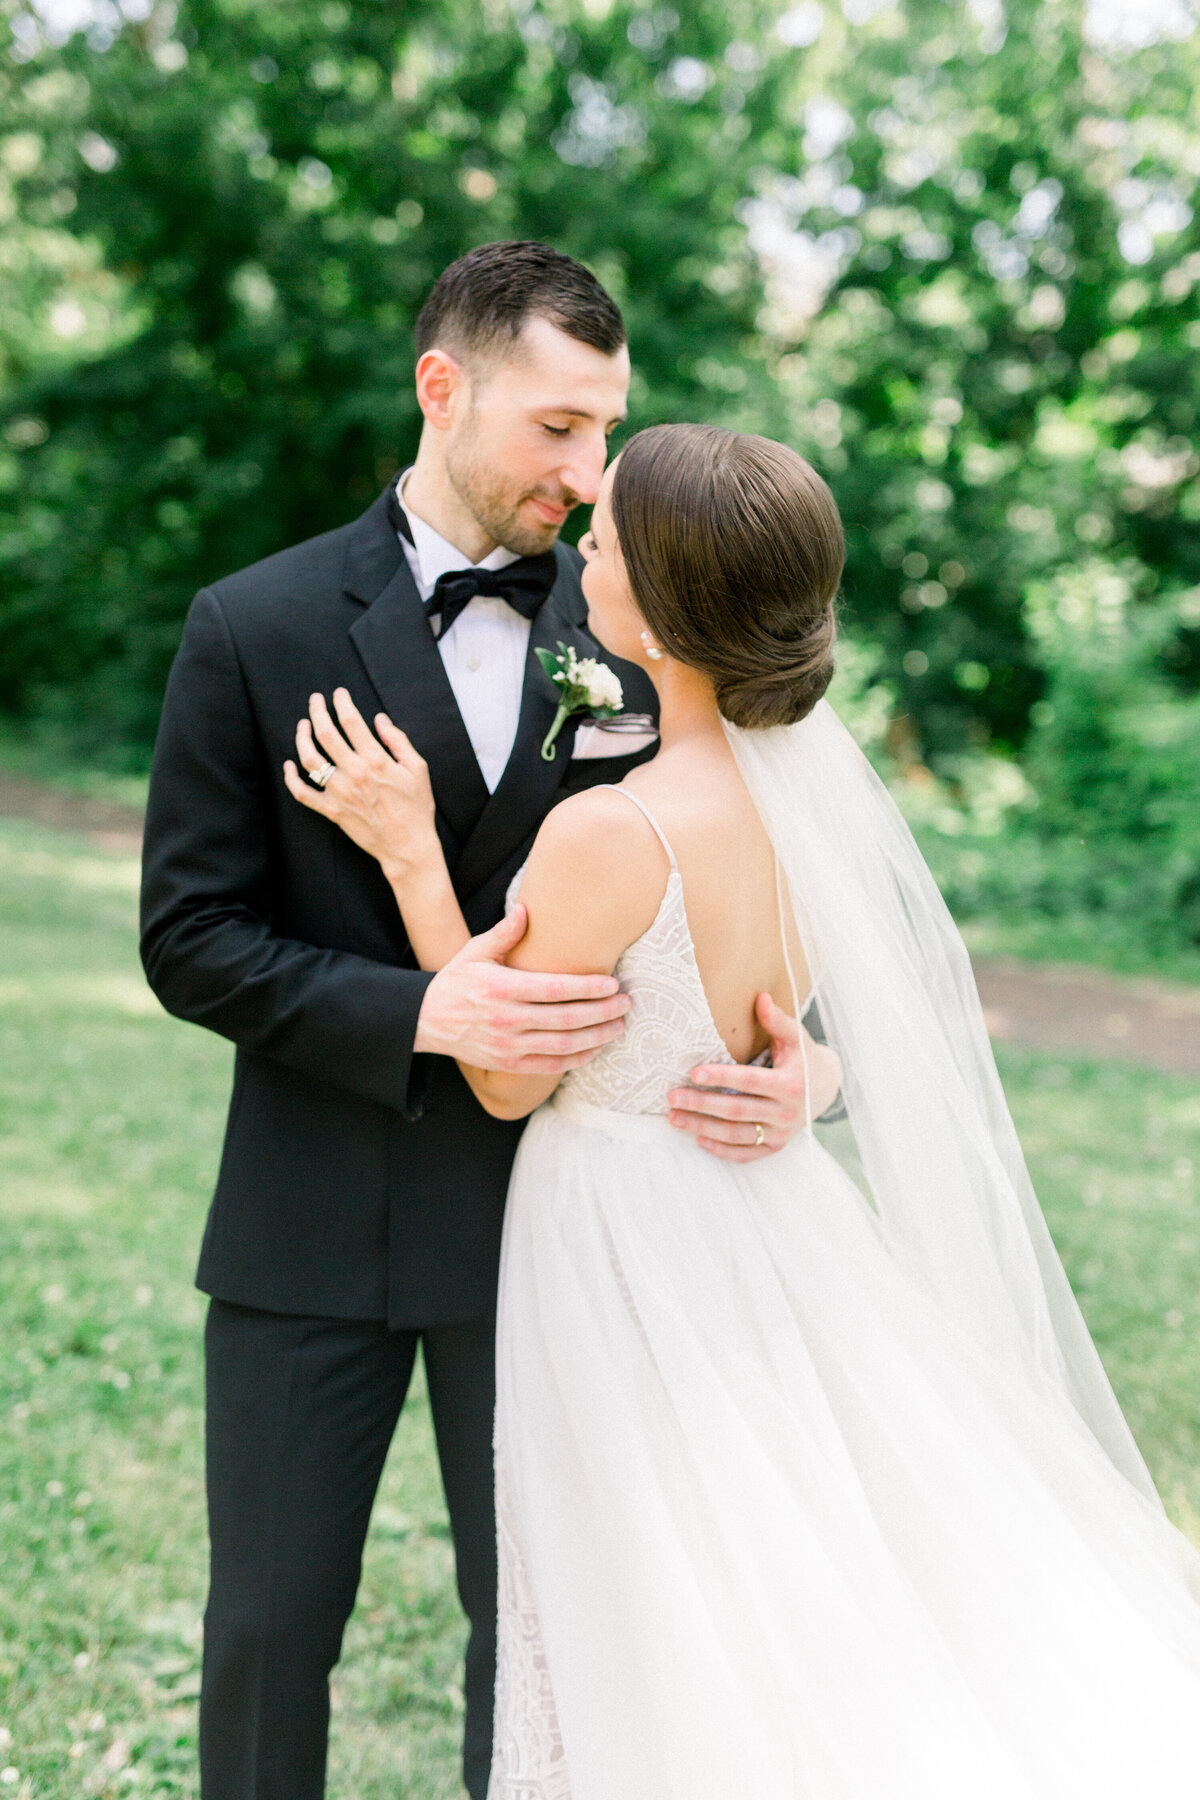 Minnesota wedding photographer, Minneapolis wedding photographer, Minnesota luxury photographer, minnesota light and airy photographer, minnesota light and airy wedding photographer, wedding inspiration